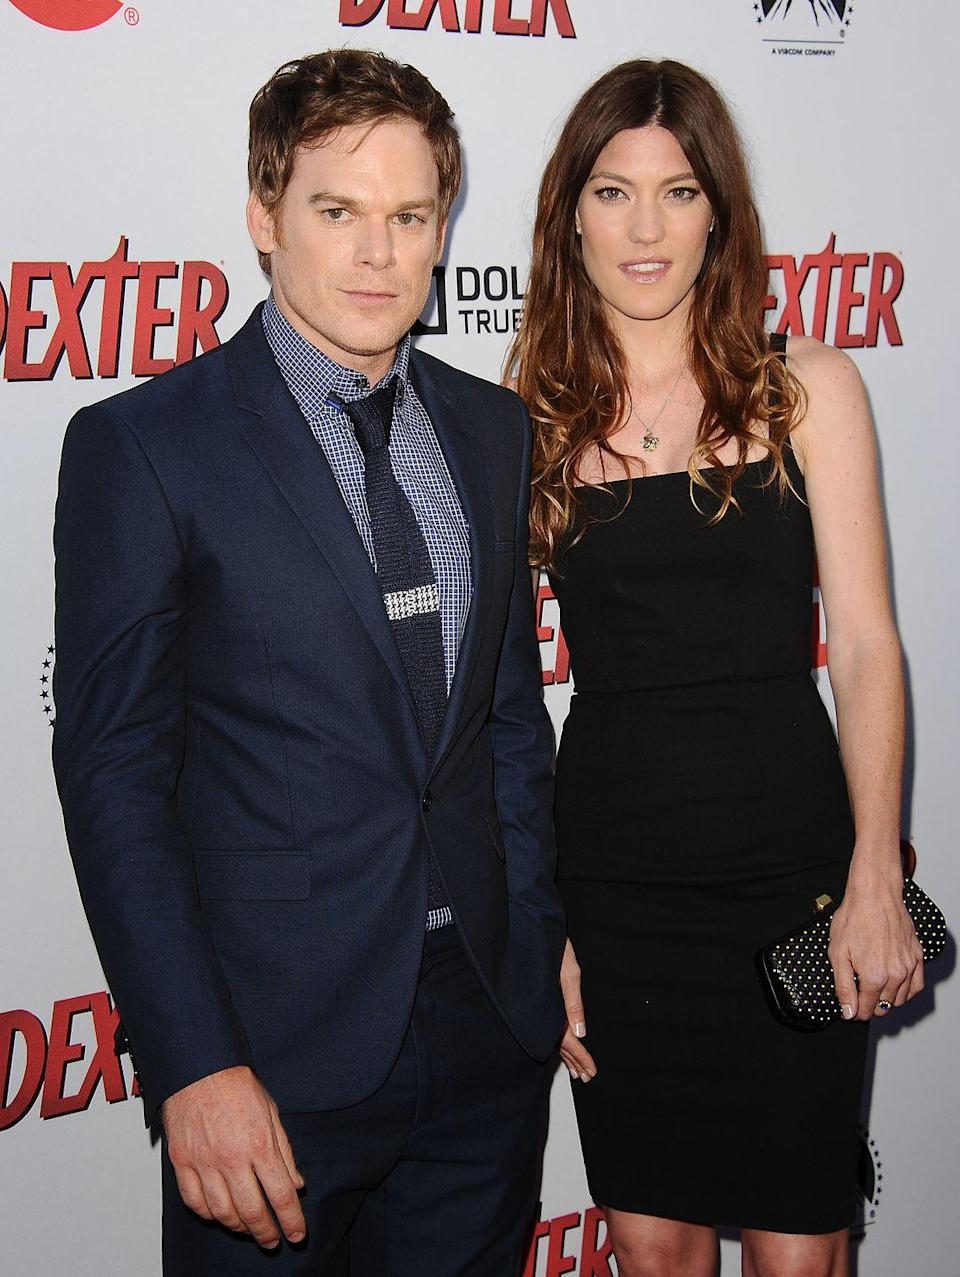 "<p>The <em>Dexter</em> siblings definitely had some abnormal chemistry on-set, and so they went on to date in real-life. After marrying in 2008, the two ended up getting a divorce <a href=""http://www.huffingtonpost.com/2010/12/13/dexter-stars-split-michael-c-hall-jennifer-carpenter-divorce_n_796279.html"" rel=""nofollow noopener"" target=""_blank"" data-ylk=""slk:in 2011"" class=""link rapid-noclick-resp"">in 2011</a>. But, they had to set it aside and keep up their contracts by continuing to work together until the show's end in 2013.</p>"